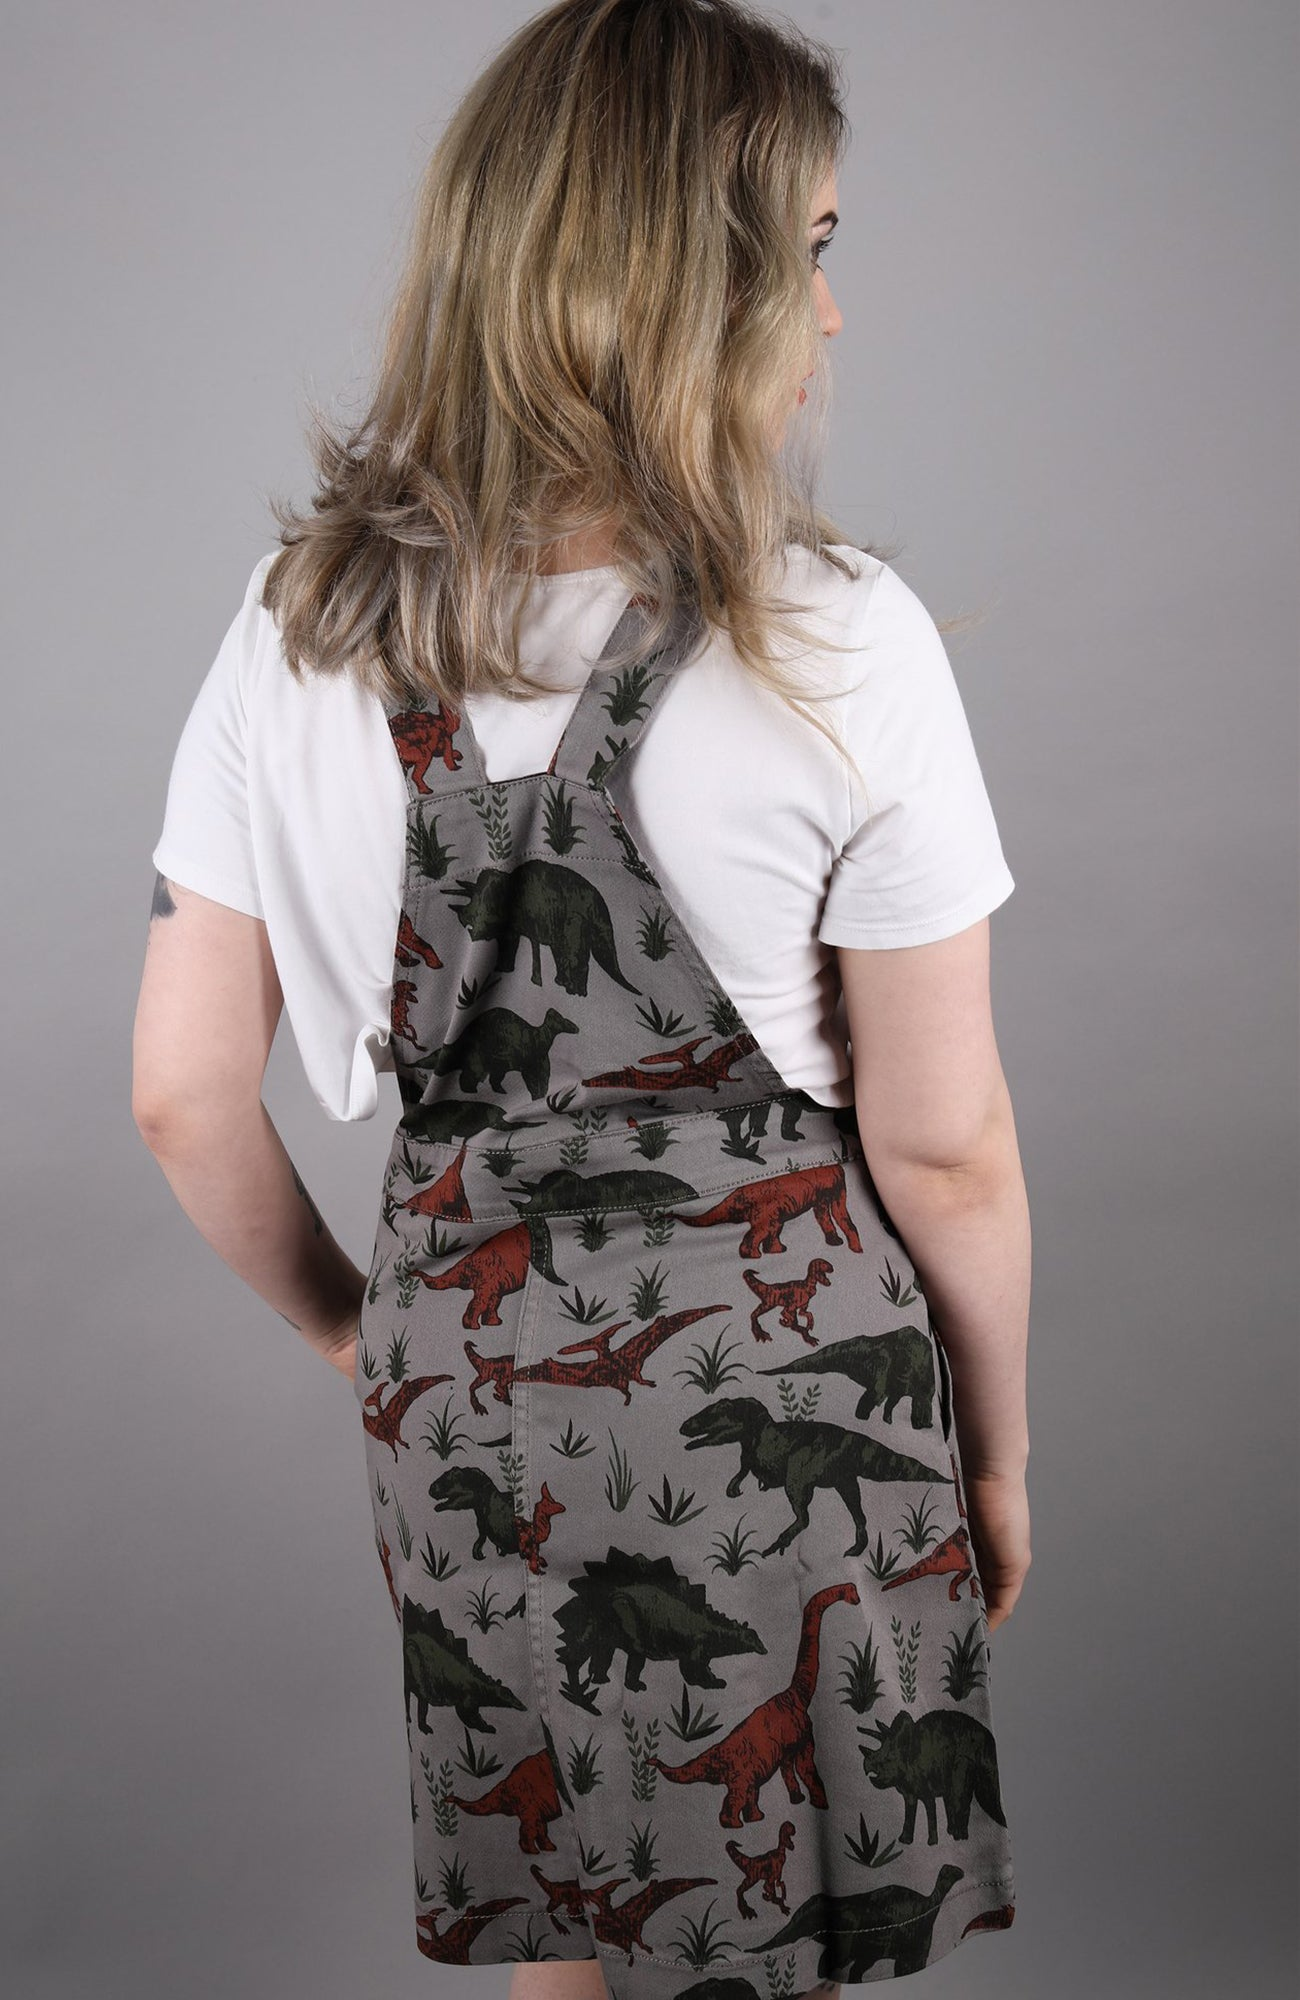 Dinosaur Adventure Pinafore Dress [stretchy twill] + Free Enamel Pin ~ Run & Fly